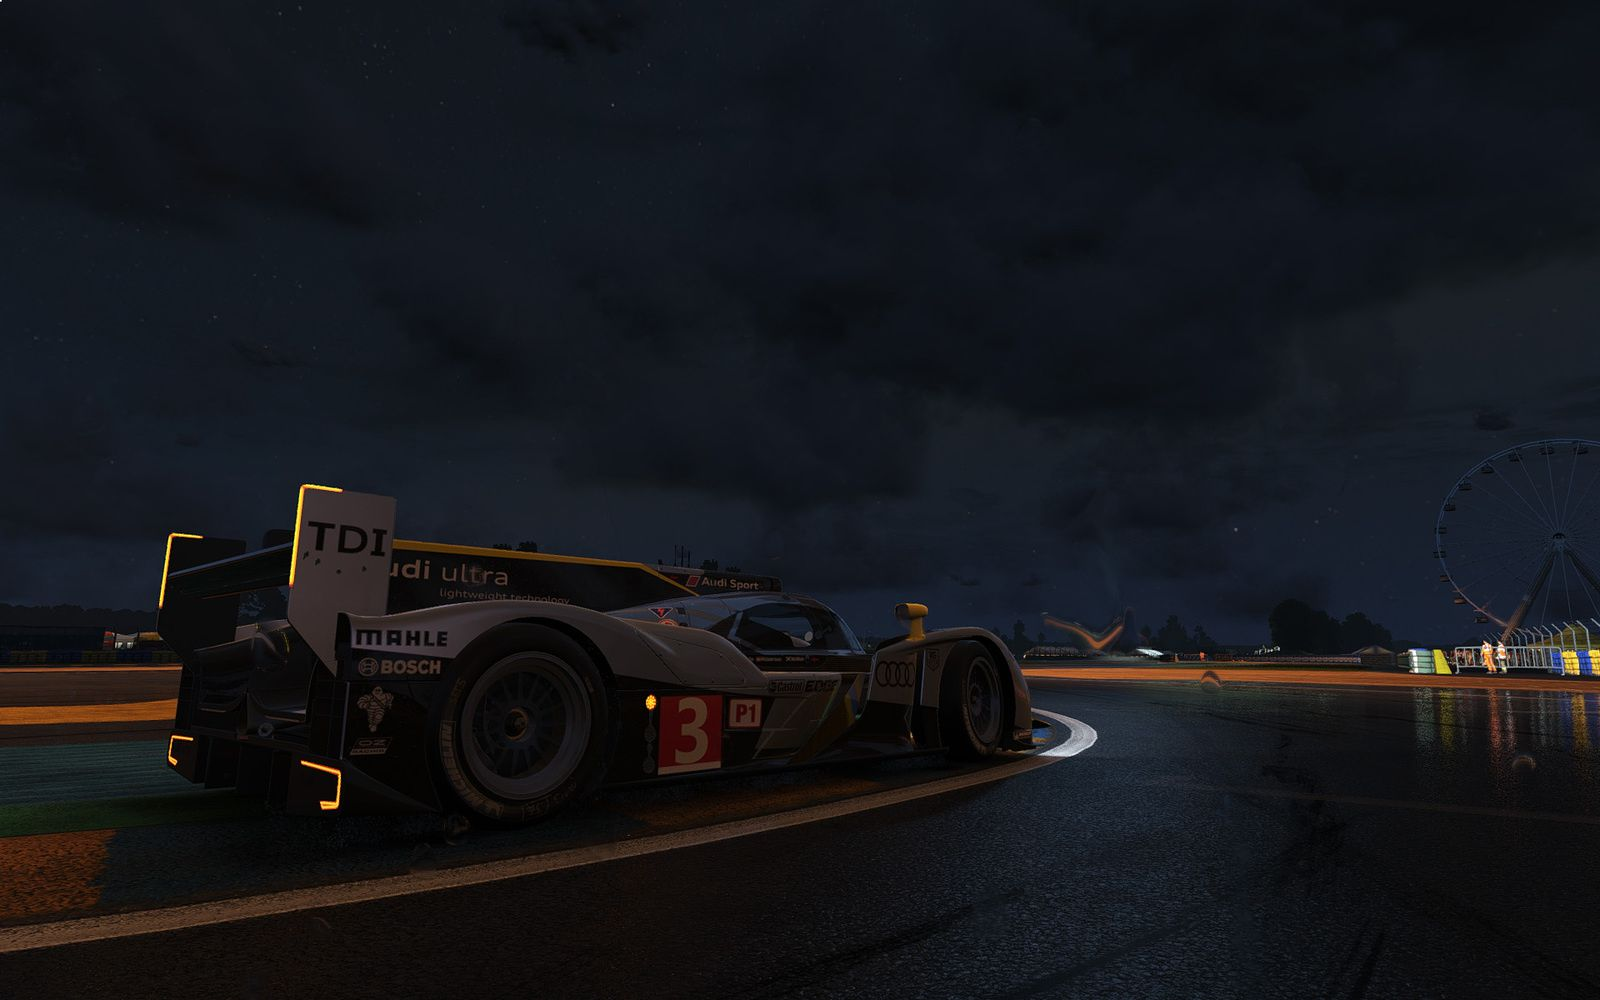 project cars s 39 offre les 24 heures du mans the racing line. Black Bedroom Furniture Sets. Home Design Ideas